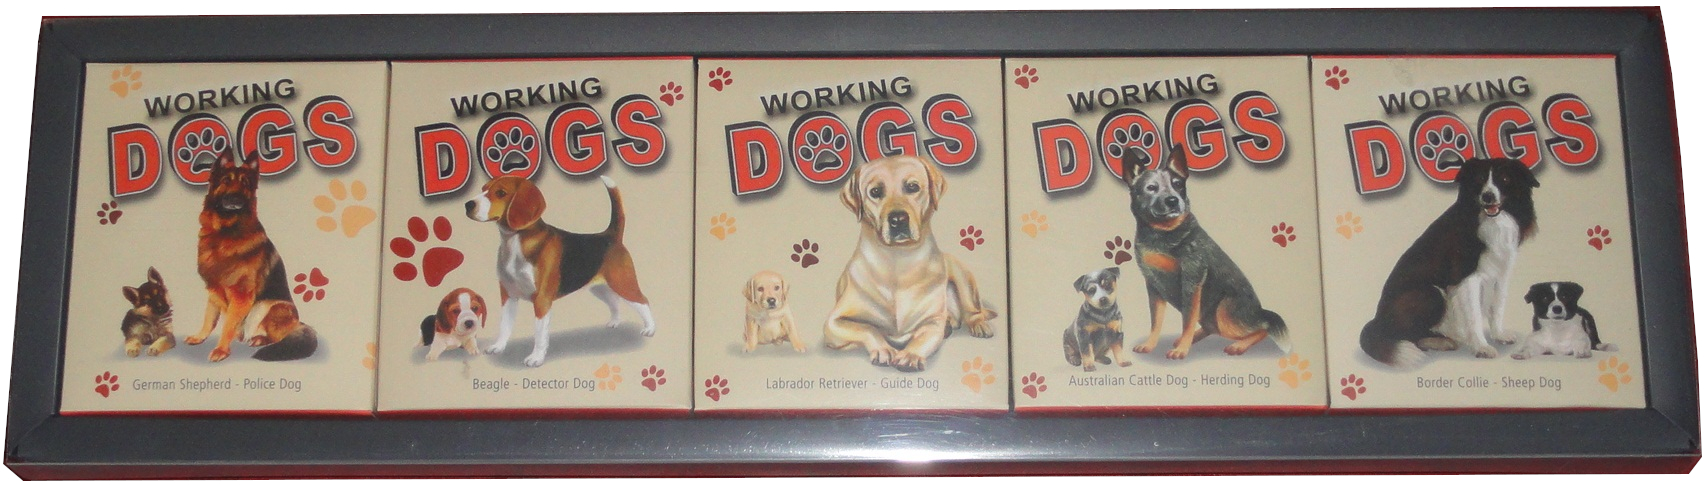 Tuvalu-5-x-1-Oz-Silber-Working-Dogs